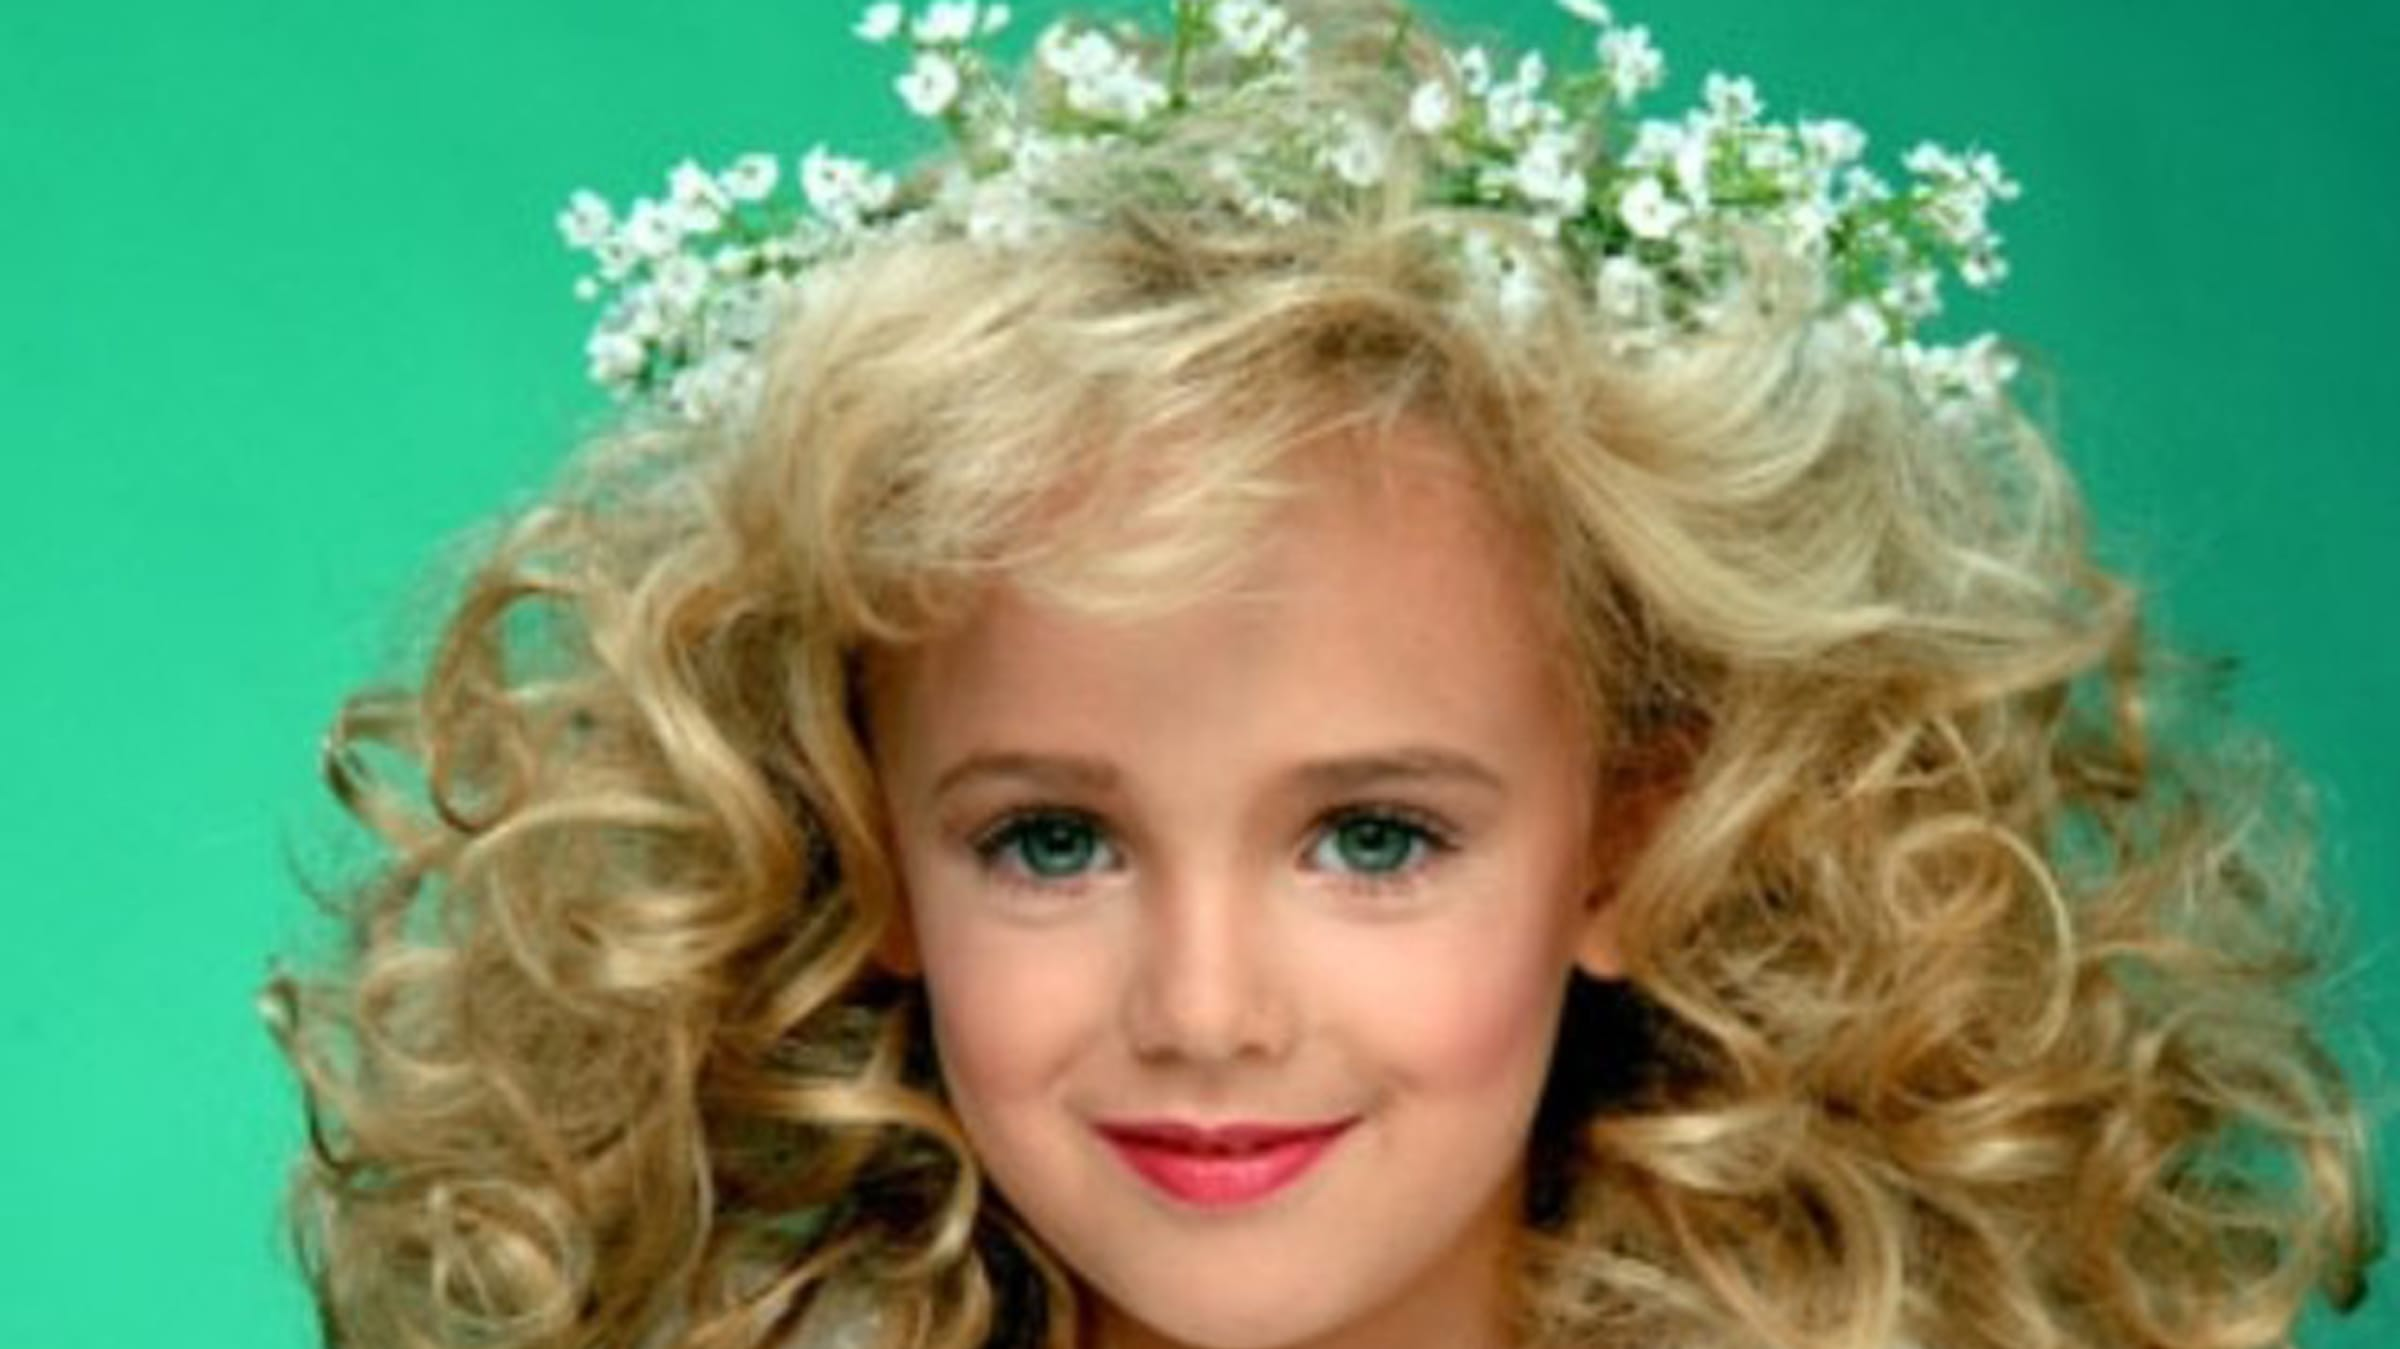 JonBenet Ramsey's Colorado Home And Other Infamous Murder ... on ramsey house plans, ramsey house in boulder, ramsey house colorado,